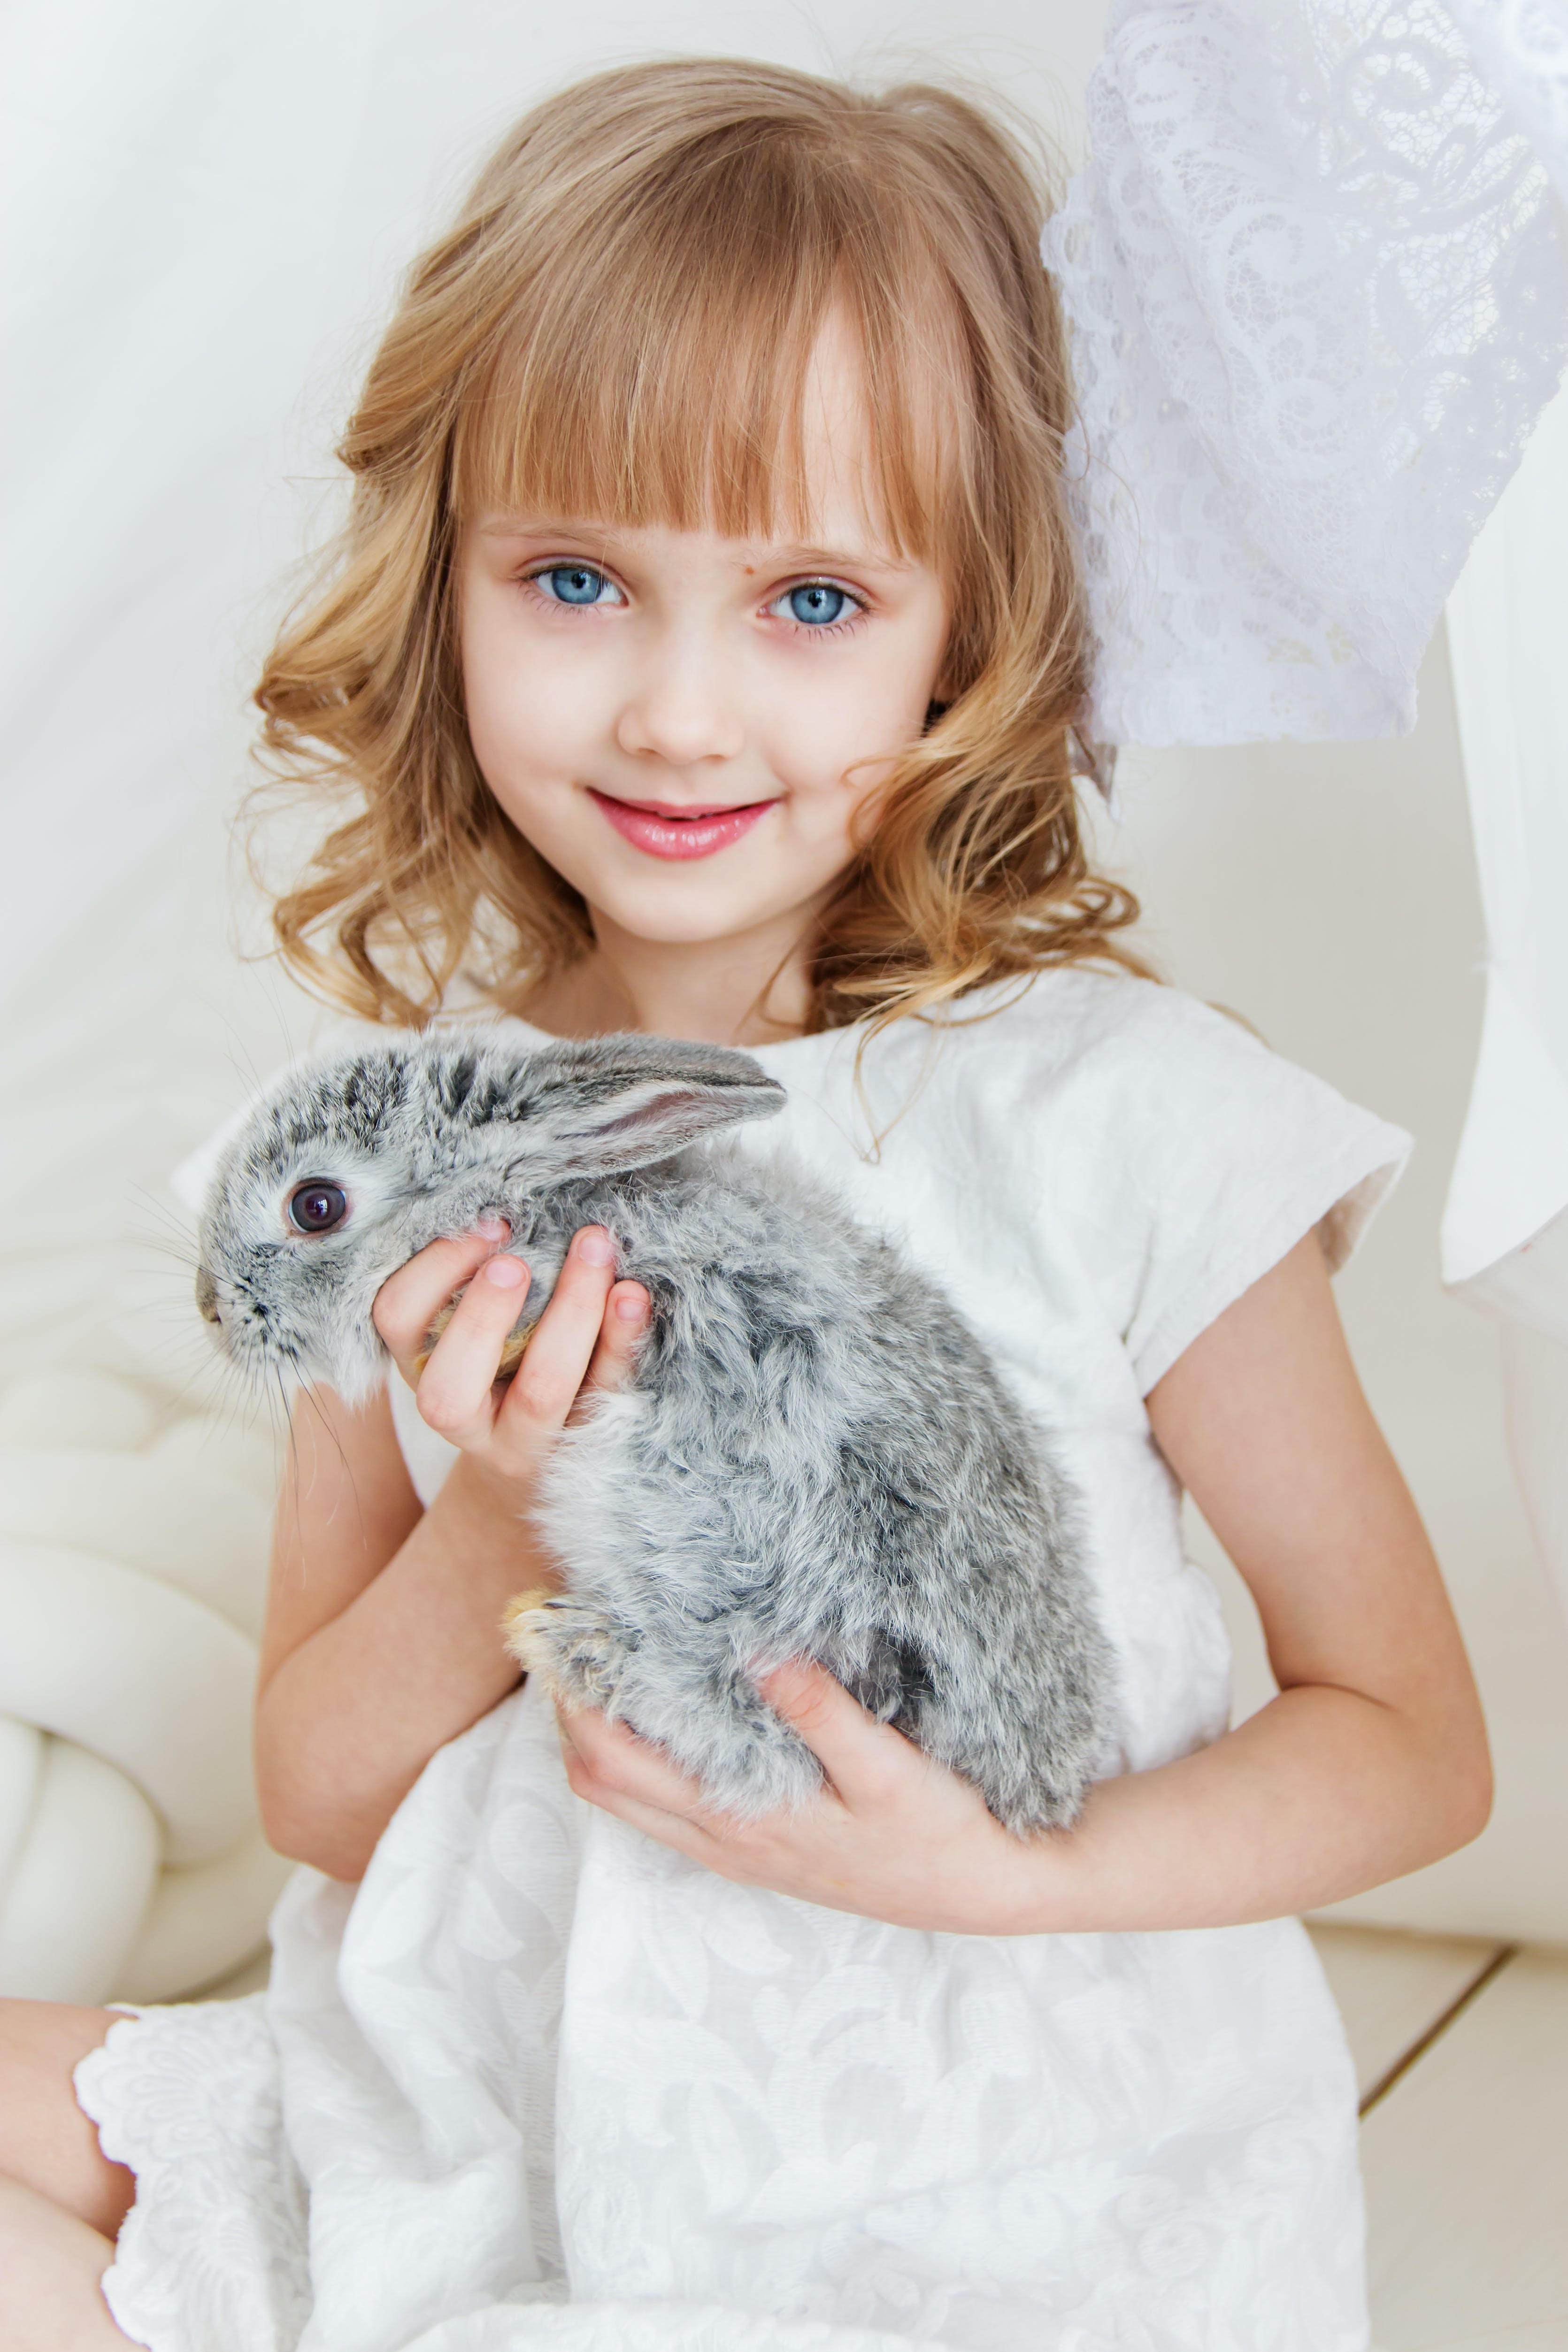 Smiling Girl Holding Gray Rabbit